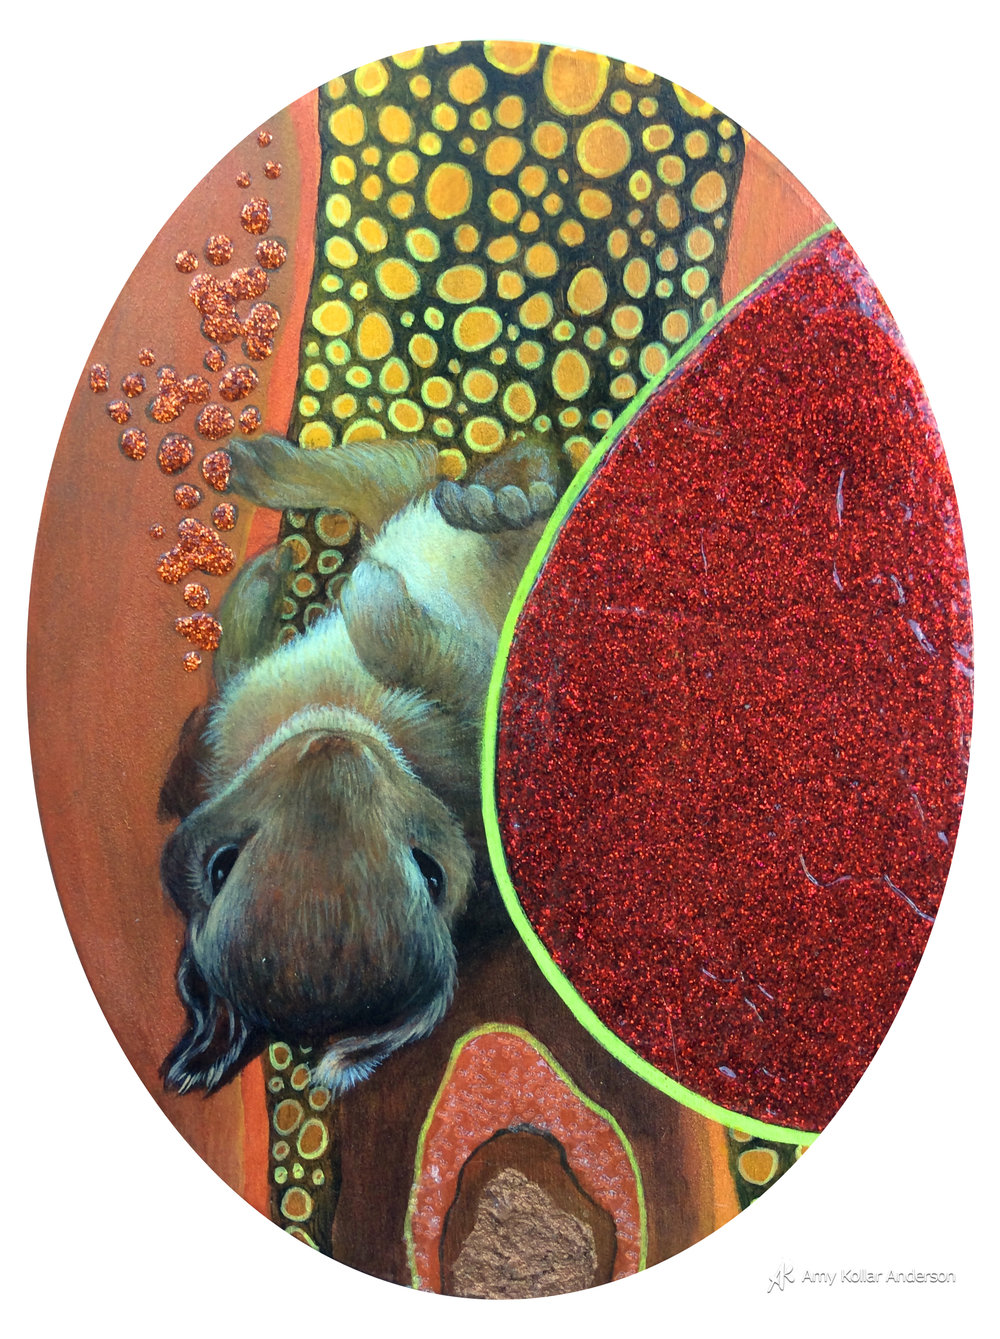 "Baby Bunny   : acrylic paint, glitter, gel medium, lava paste, and glass beads : 6"" x 8"" x 1"" : 2015 Collection of C. and R. Riordan"